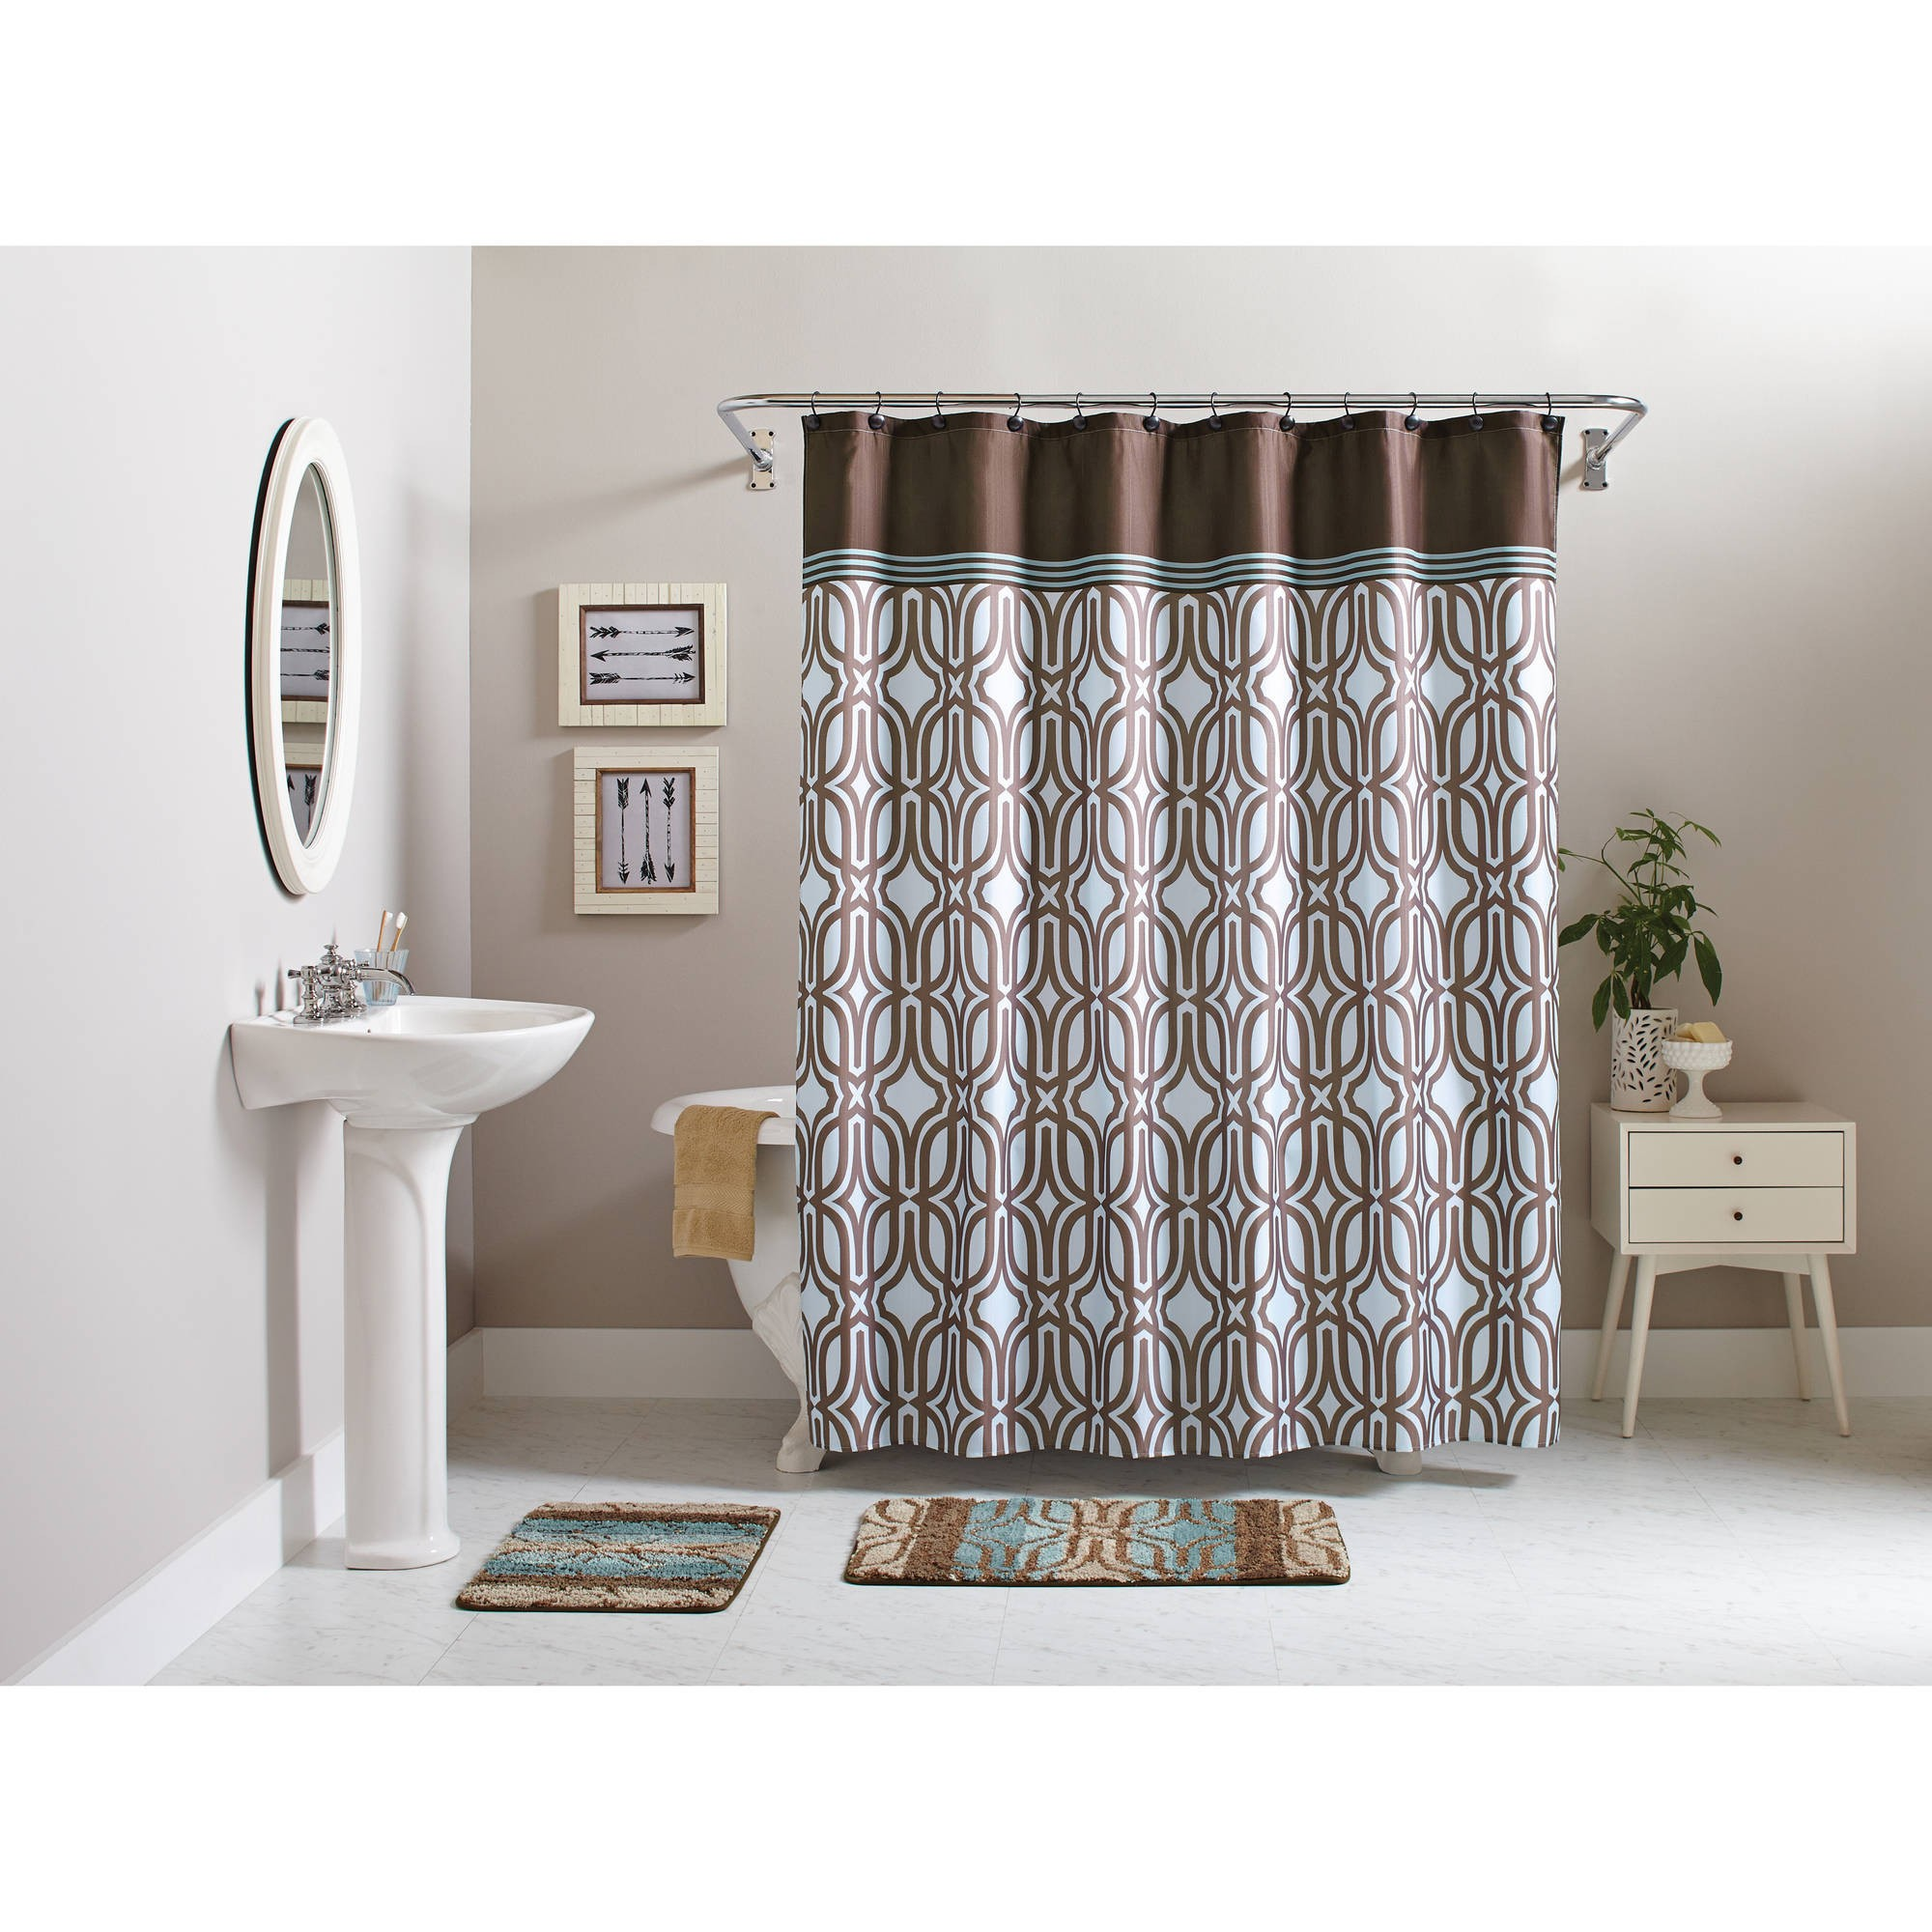 Bathroom Sets with Shower Curtain and Rugs Stunning Better Homes and Gardens Piece Geometric Bath Set Shower Photograph